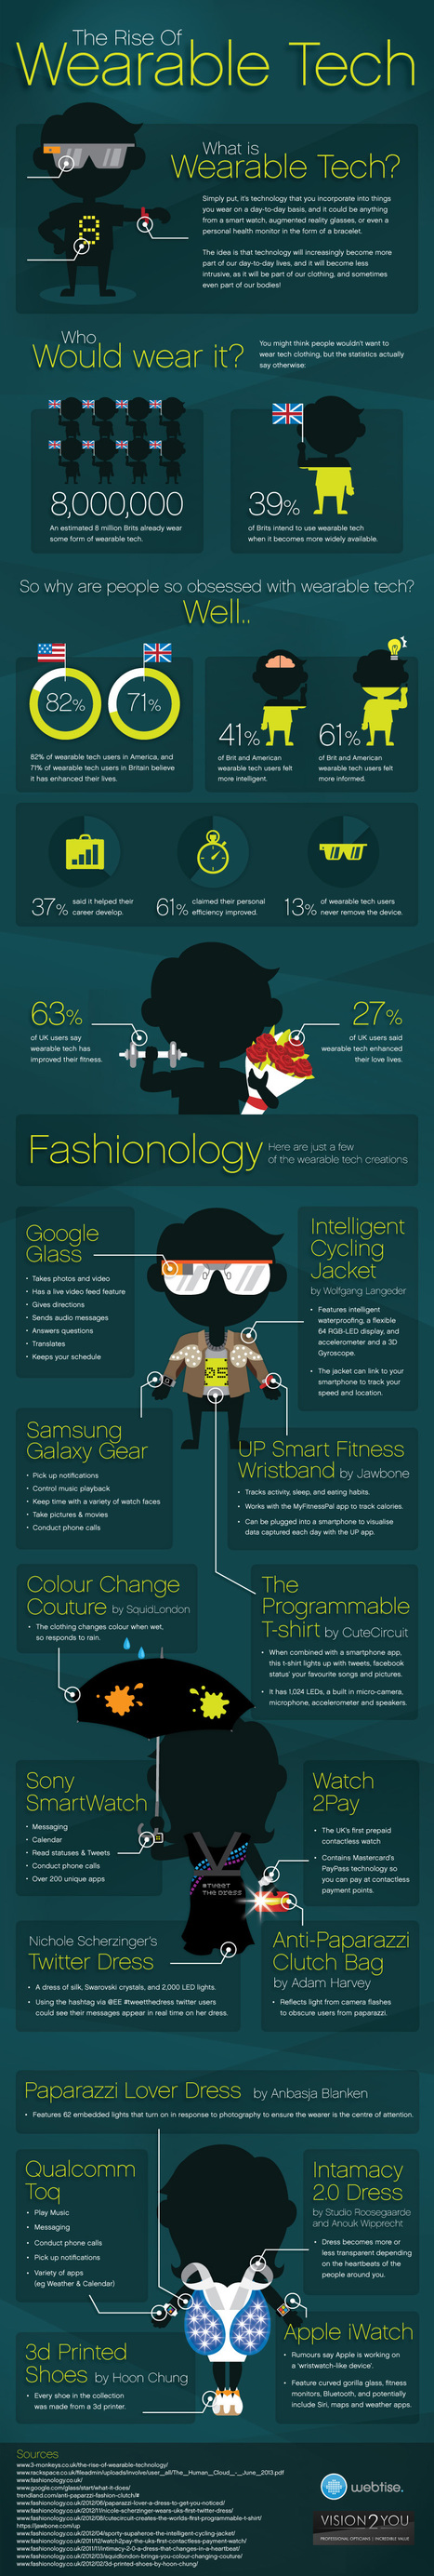 Visualistan: The Growth Of Wearable Technology [Infographic] | trends of the future | Scoop.it